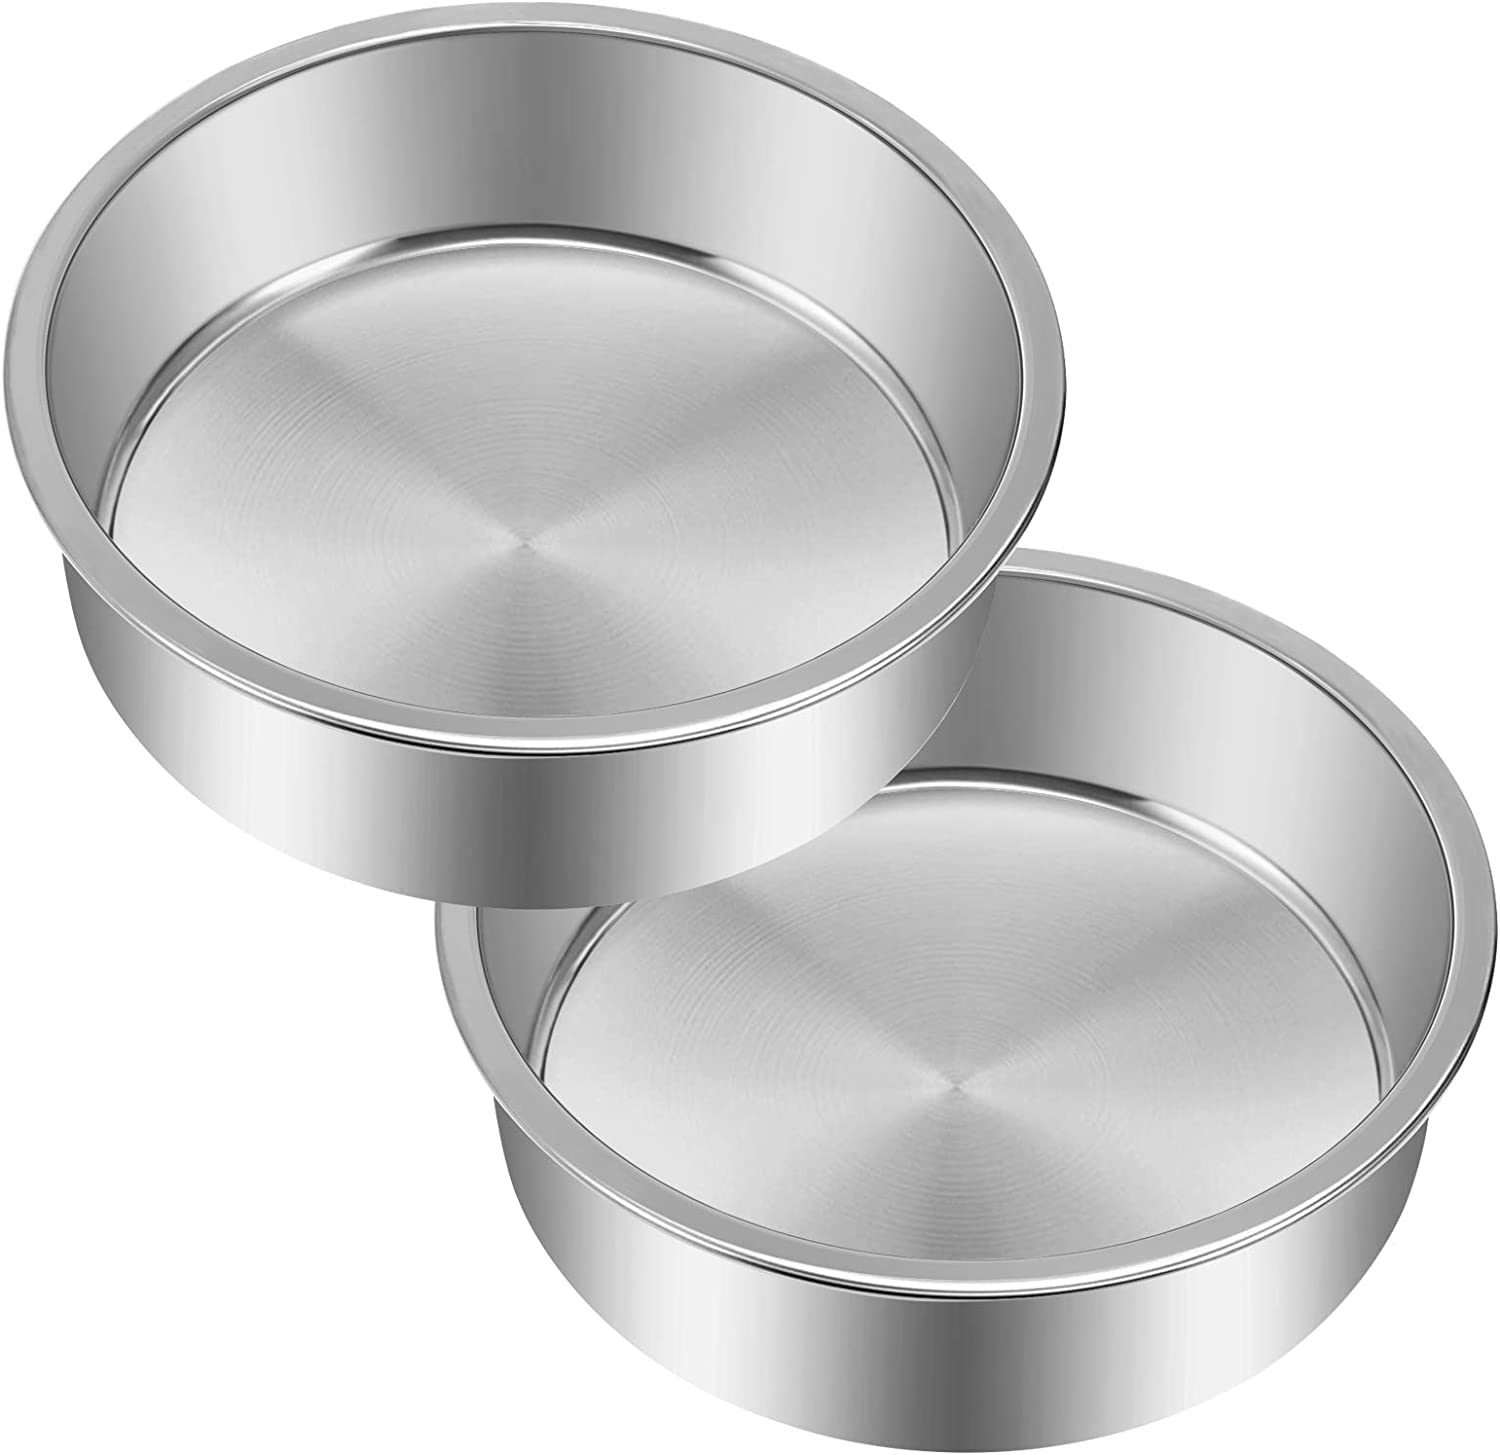 8 Inch Cake Pan Set of 2, Yododo Stainless Steel Round Cake Pans Tier Baking Pans, Fit in Pot Pressure Cooker Air Fryer, One-piece Molding, Heavy Duty, Mirror Finish & Dishwasher Safe